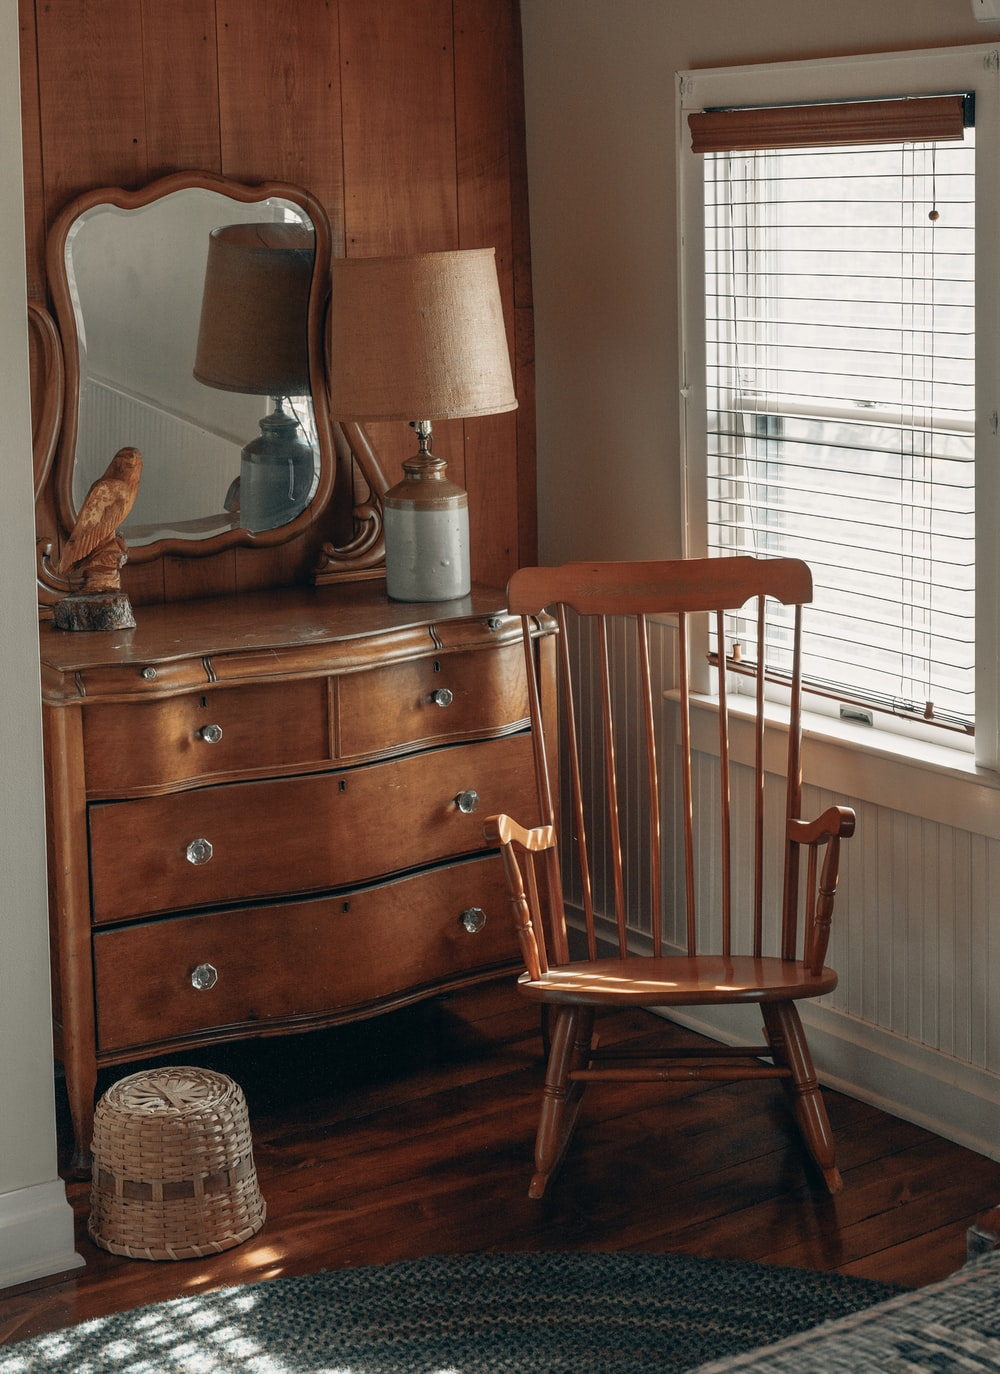 brown wooden chair beside brown wooden drawer